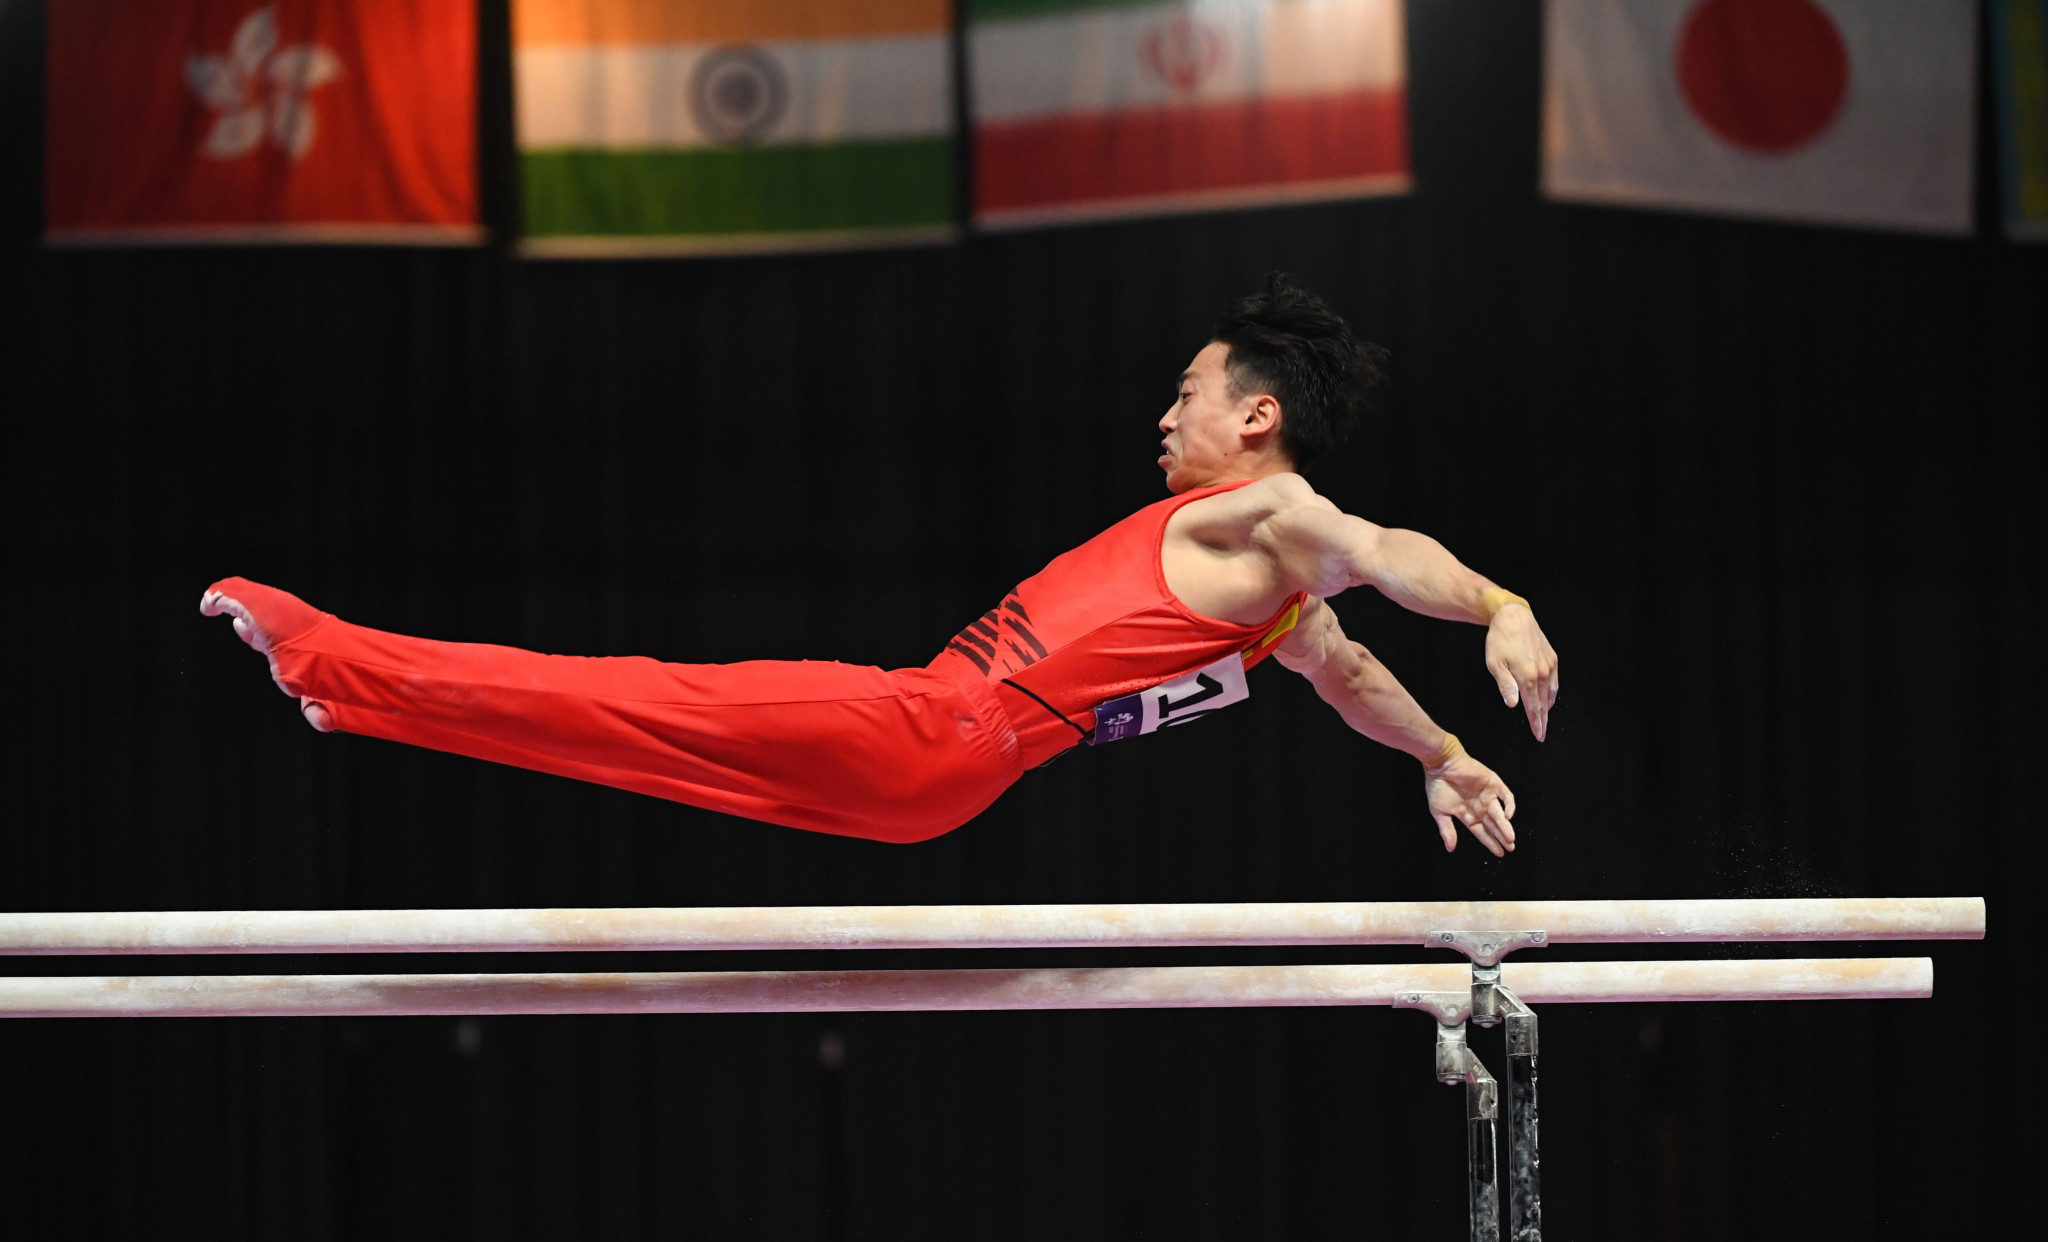 Zou Jingyuan of China produced a near-perfect routine to claim parallel bars gold ©Getty Images